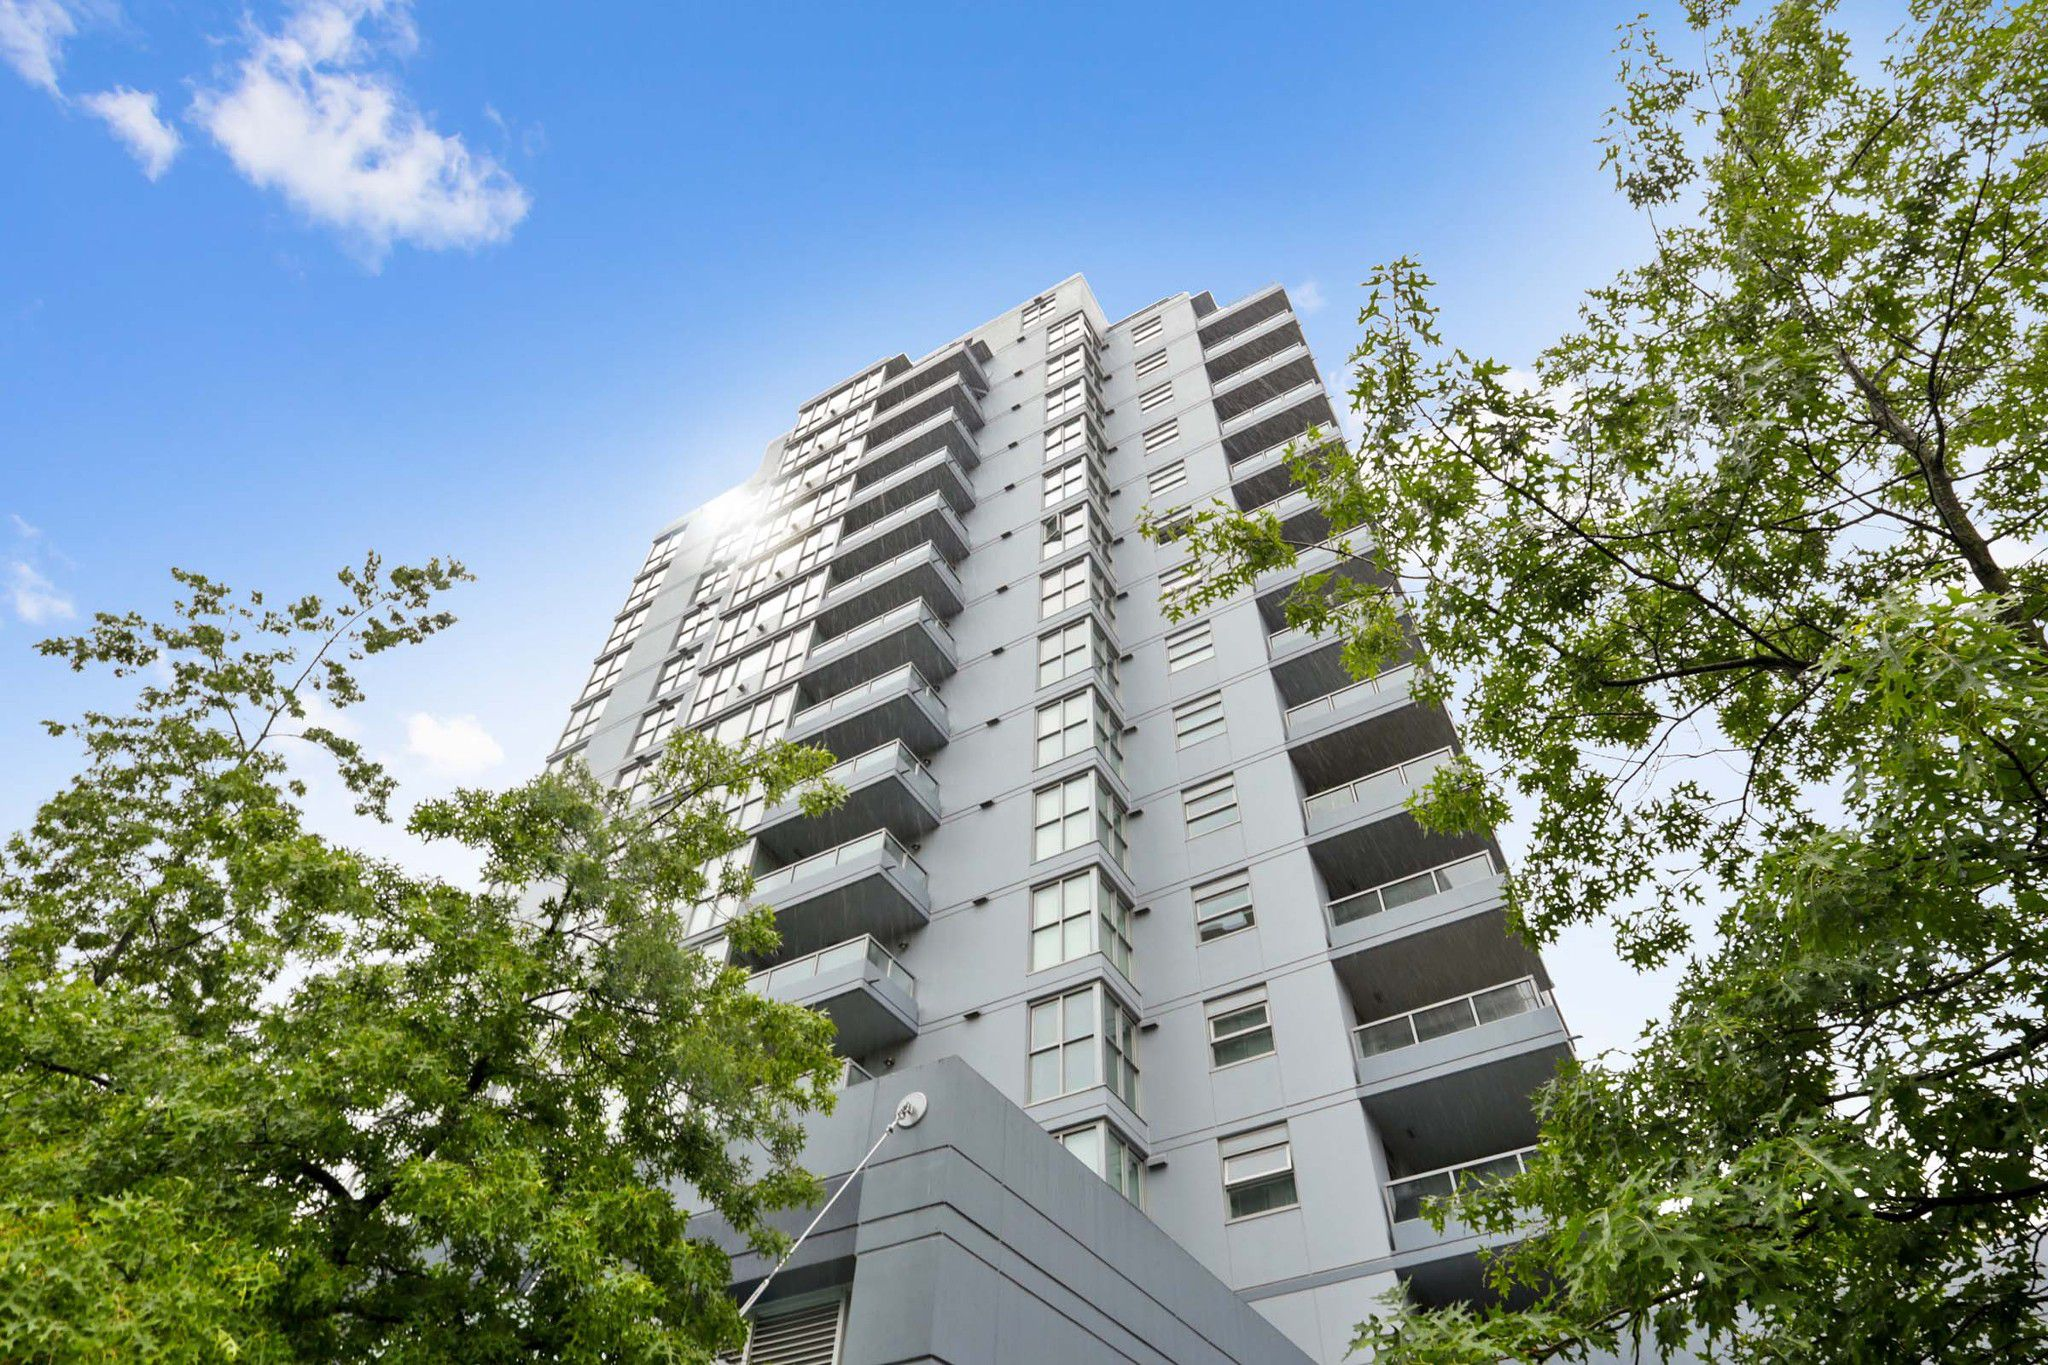 """Main Photo: 804 121 W 16TH Street in North Vancouver: Central Lonsdale Condo for sale in """"SILVA"""" : MLS®# R2269546"""